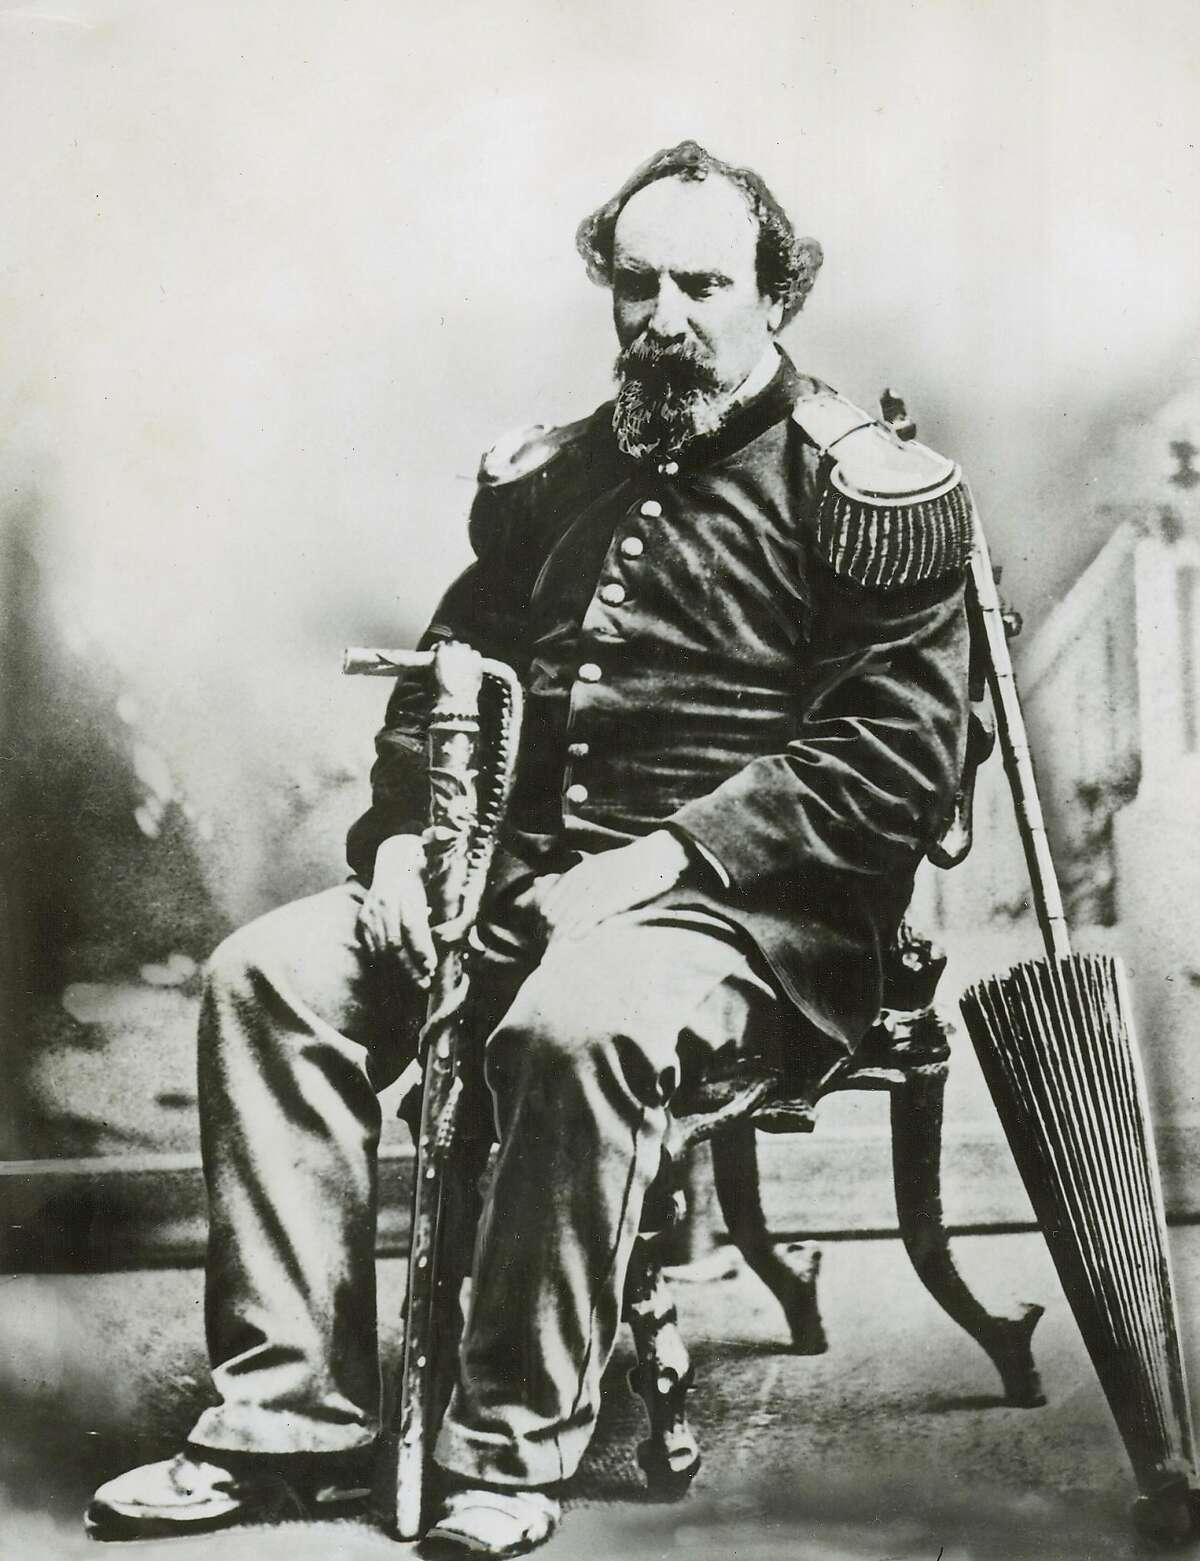 norton_1.JPG Emperor Norton- Emperor of the United States and Protector of Mexico. /staff photographer